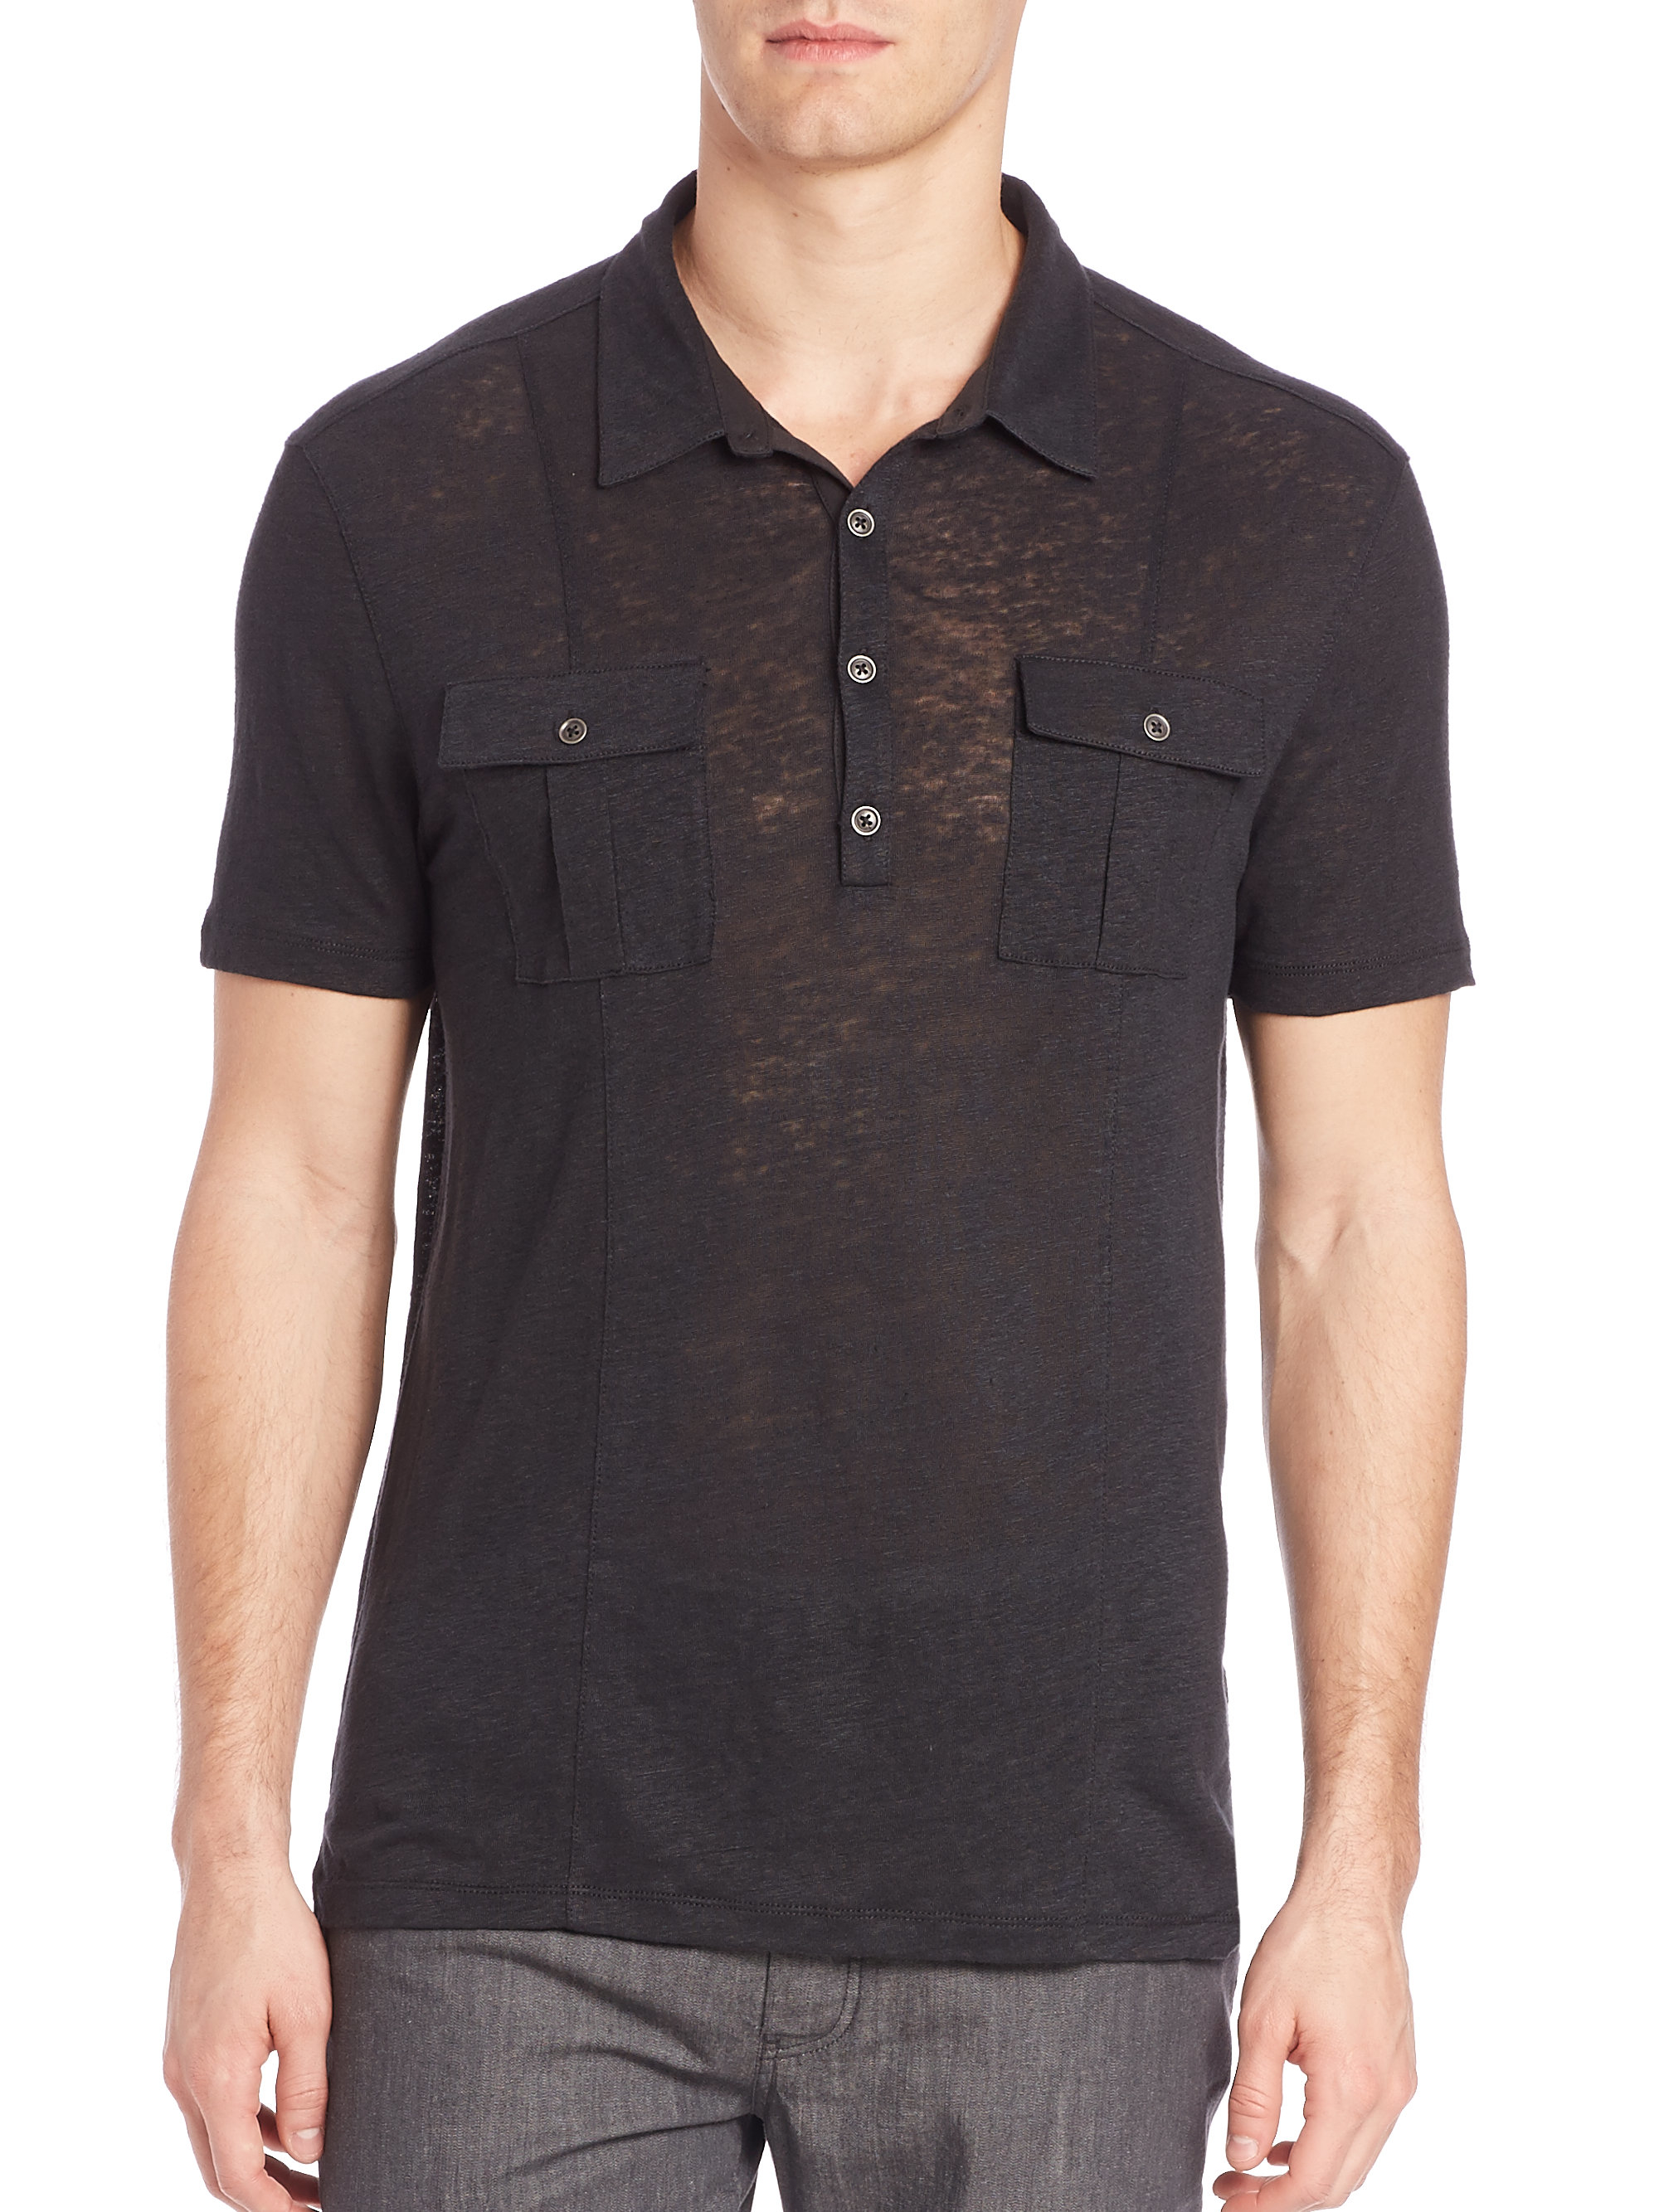 John varvatos two pocket knit polo in black for men lyst for Two pocket polo shirt